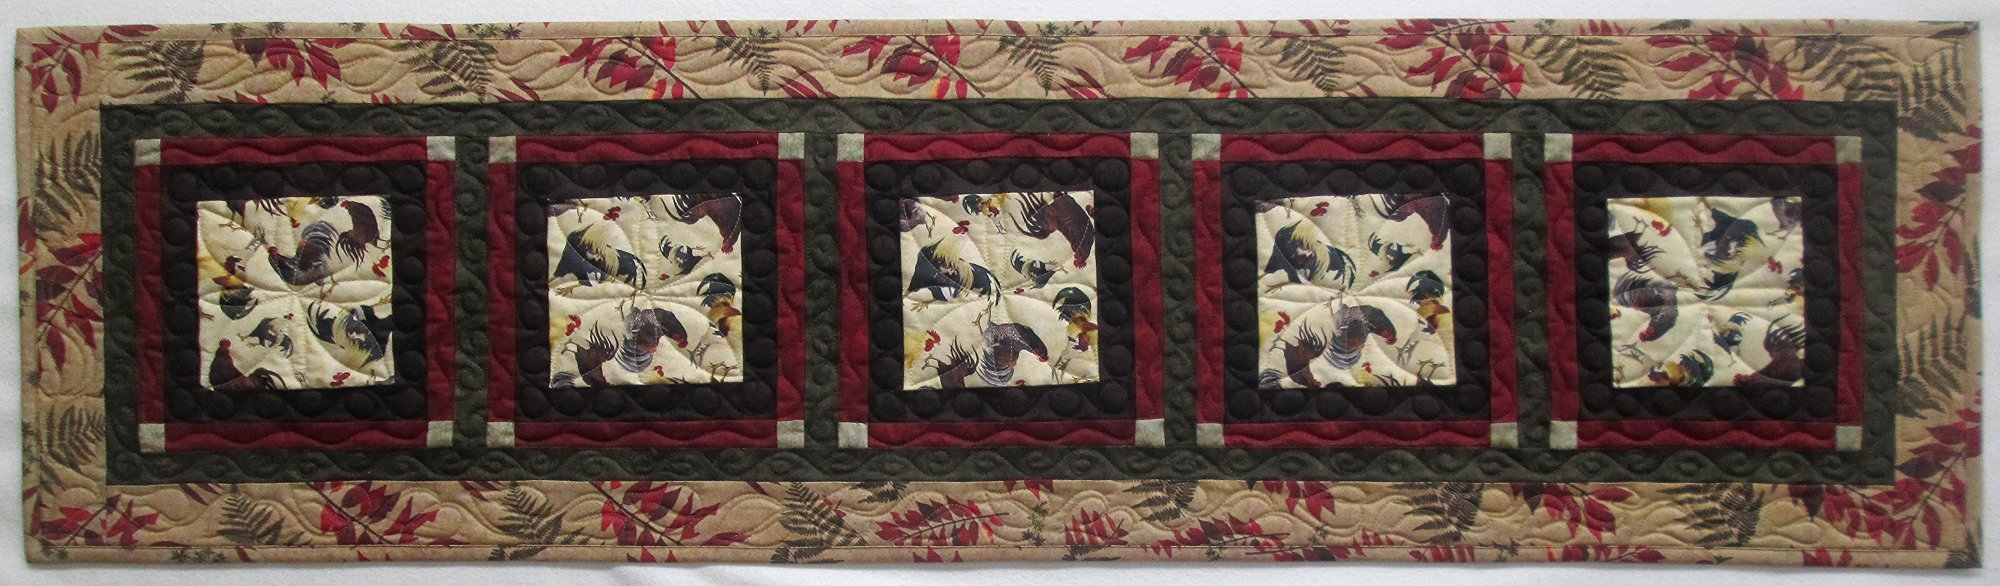 Rustic Rooster Windows Table Runner Kit